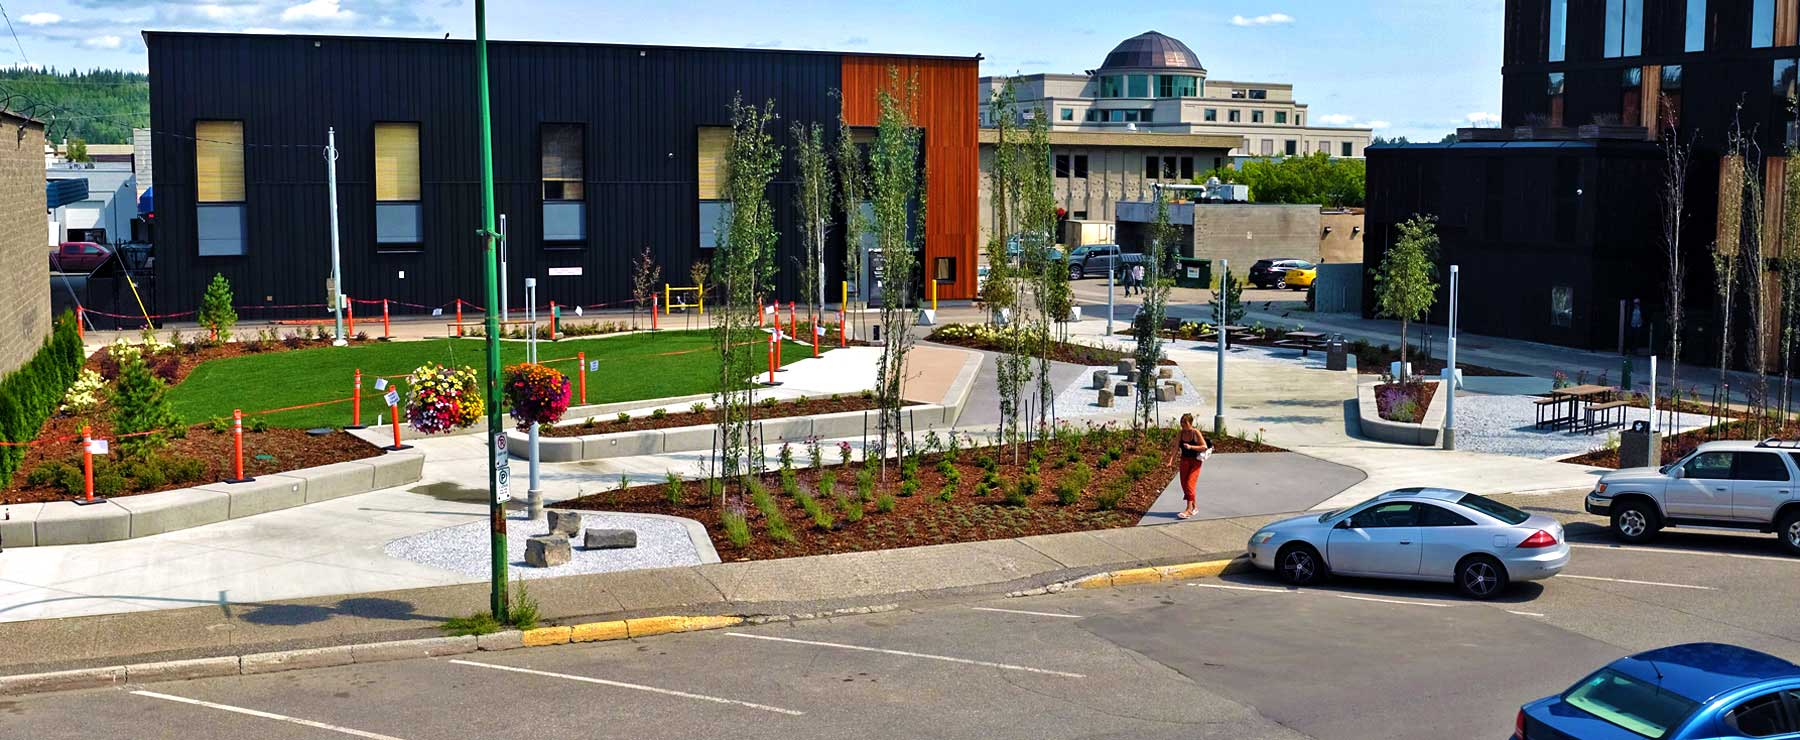 Wood Innovation Square - Prince George's newest downtown park